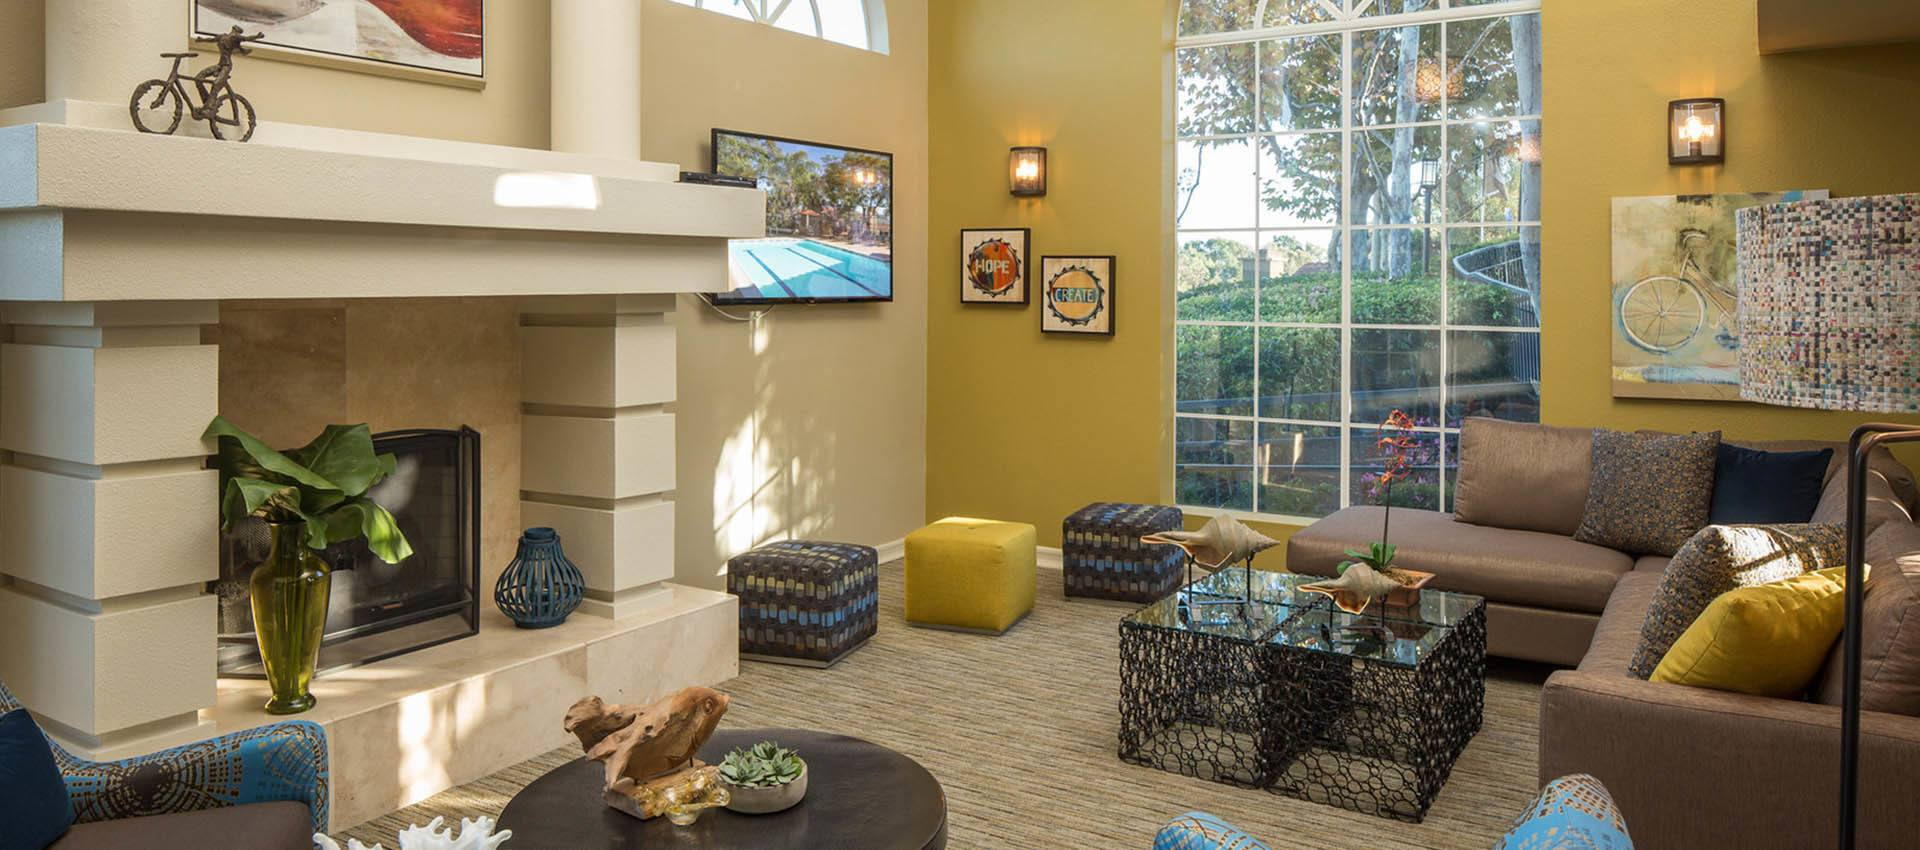 Resident's clubhouse with kitchen at Niguel Summit Condominium Rentals in Laguna Niguel, California